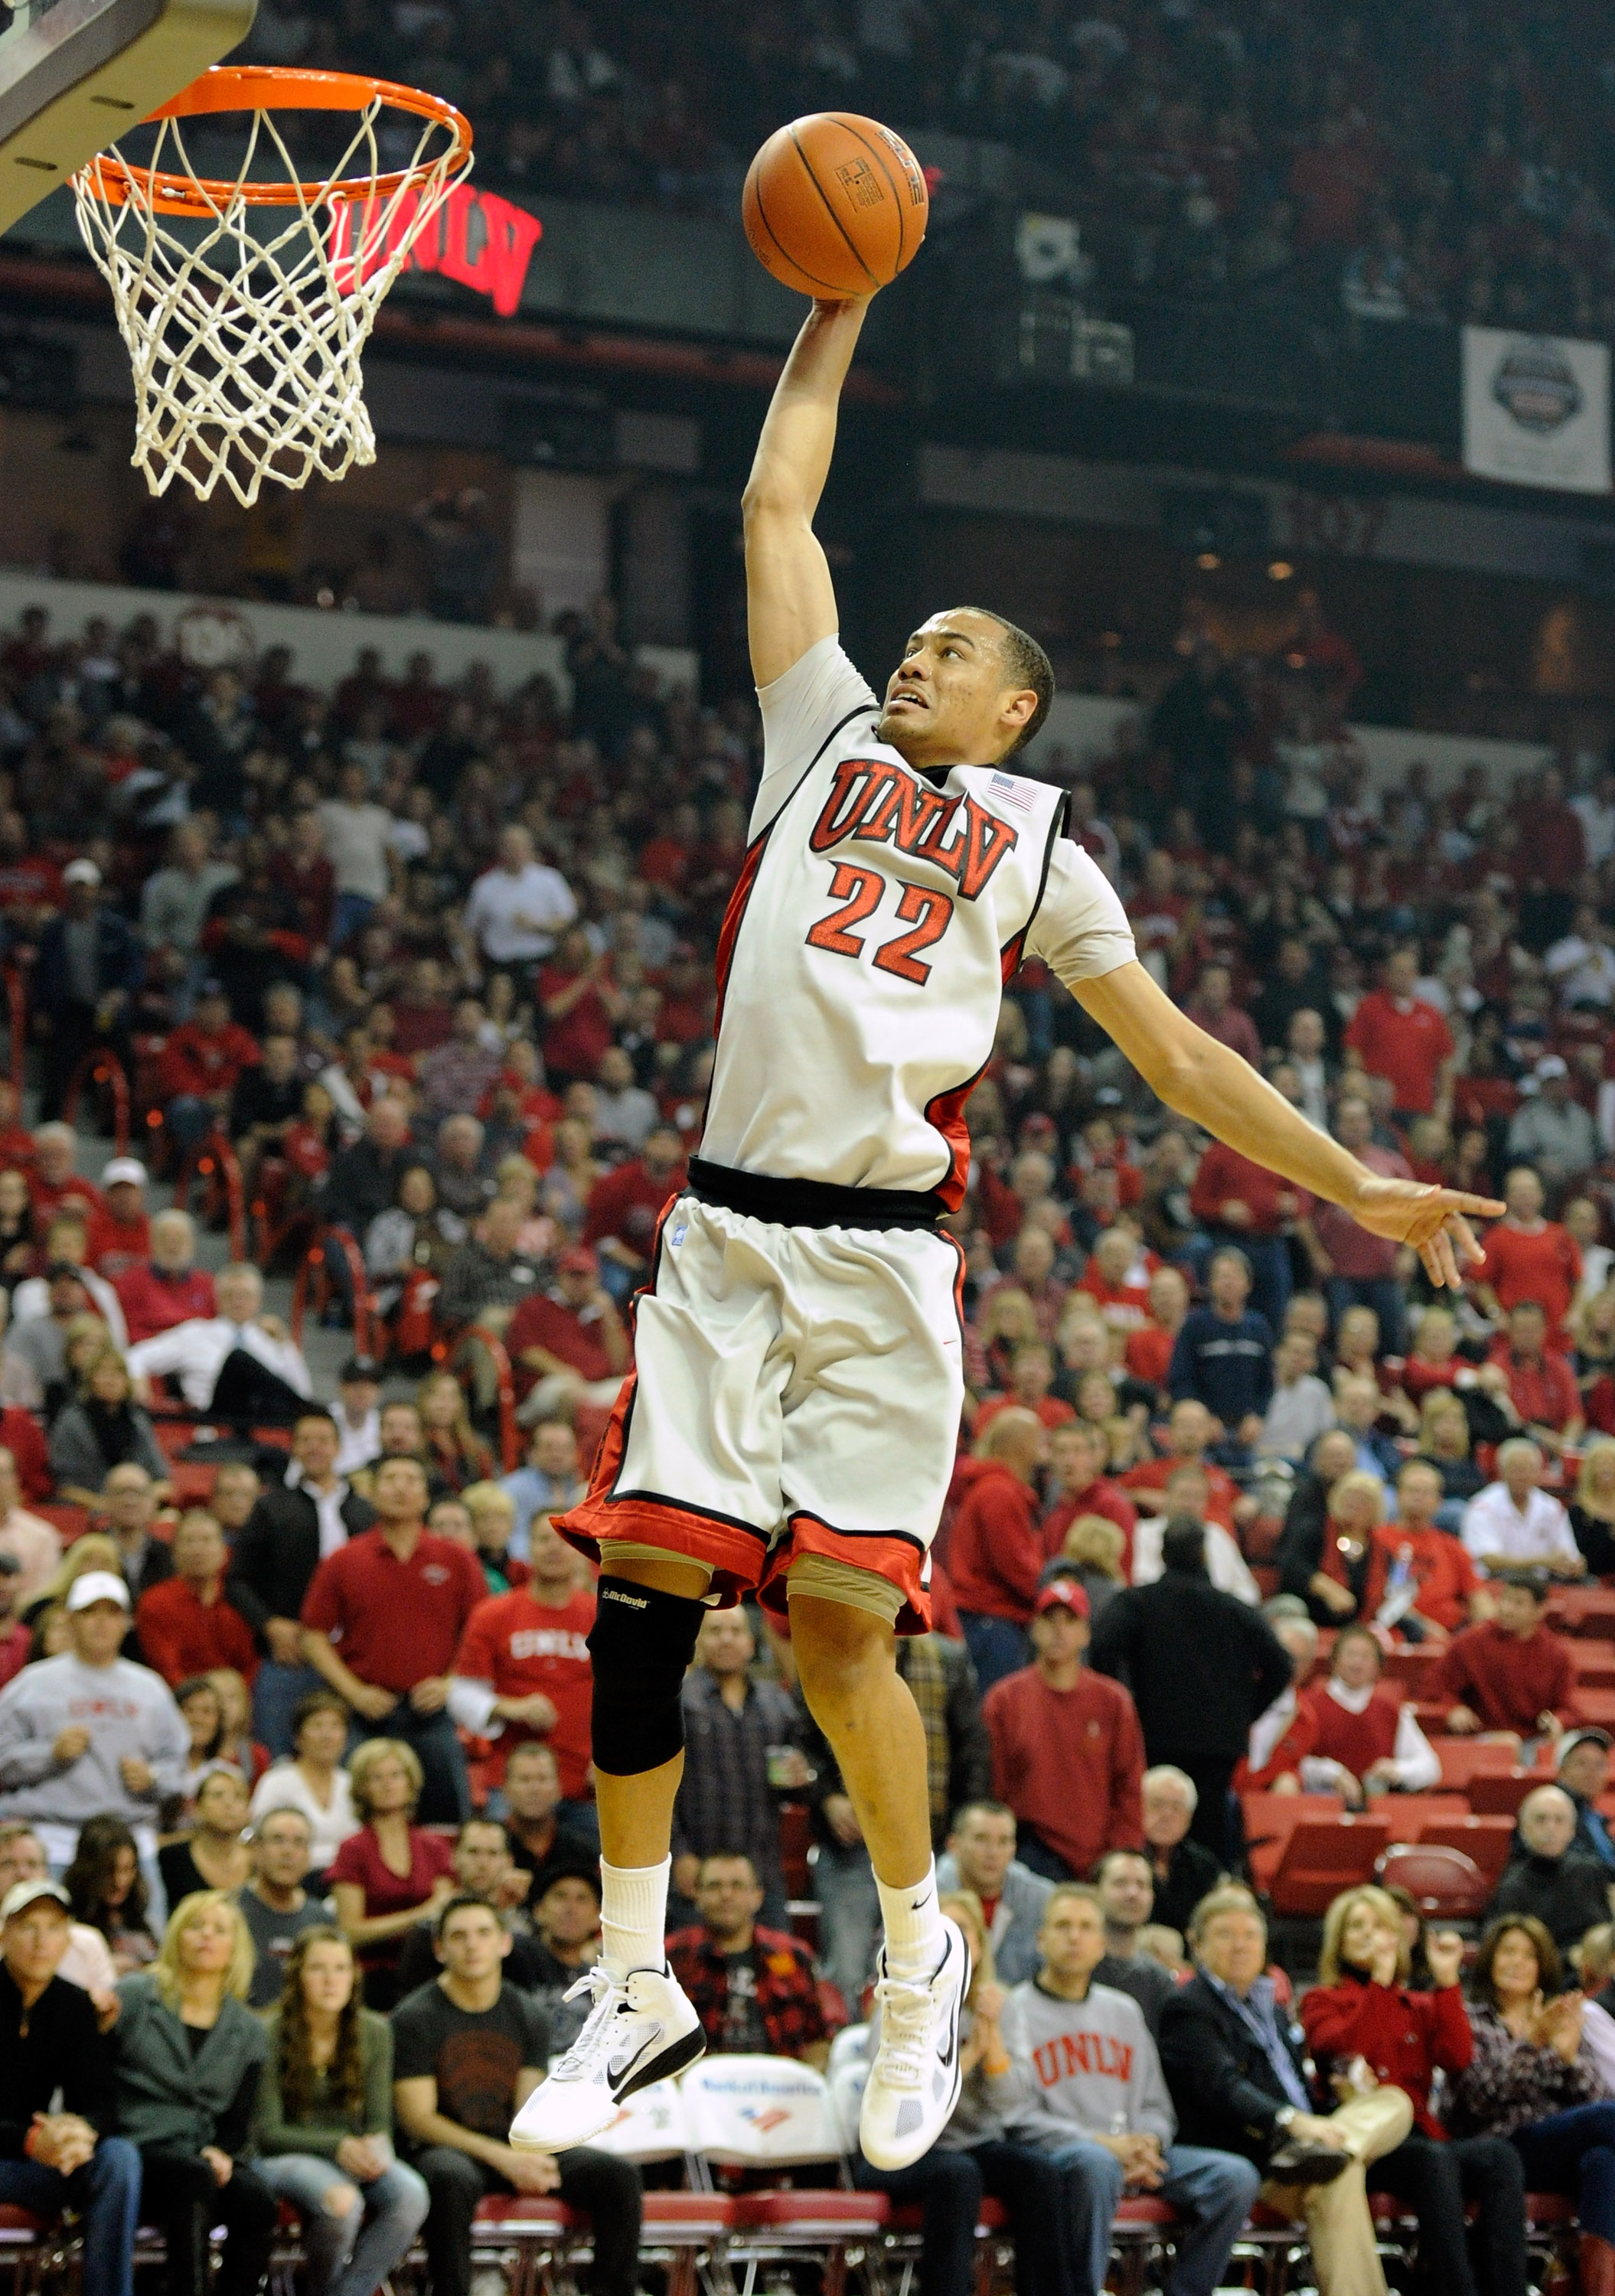 LAS VEGAS - NOVEMBER 20:  Chace Stanback #22 of the UNLV Rebels goes in for a dunk against the Wisconsin Badgers during their game at the Thomas & Mack Center November 20, 2010 in Las Vegas, Nevada. UNLV won 68-65.  (Photo by Ethan Miller/Getty Images)